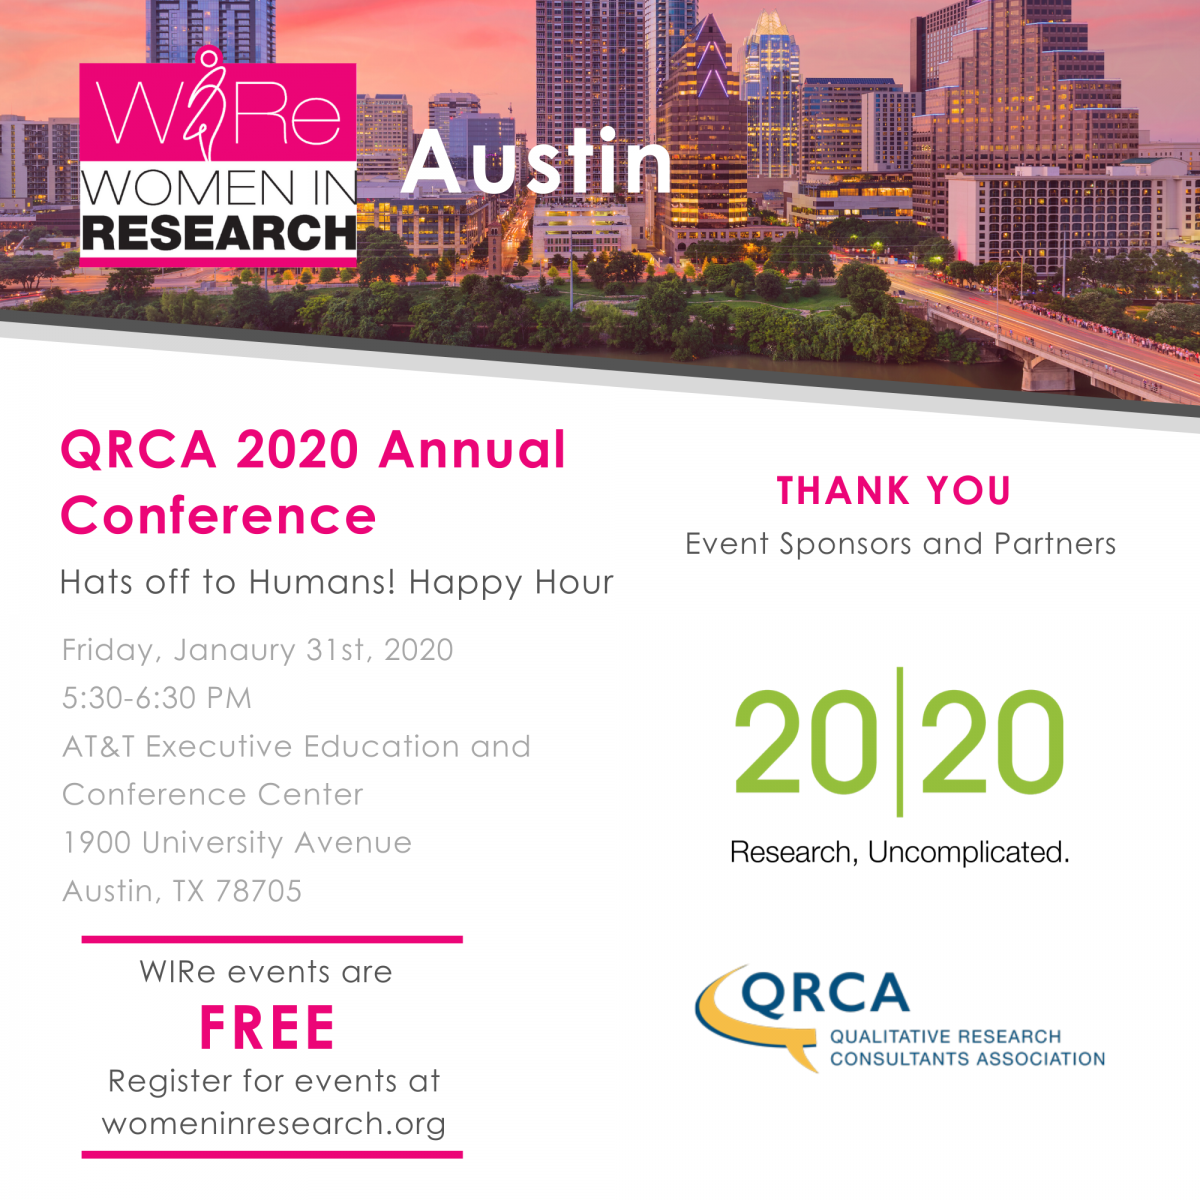 WIRe + QRCA Happy Hour at QRCA 2020 Annual Conference: Hats off to Humans!